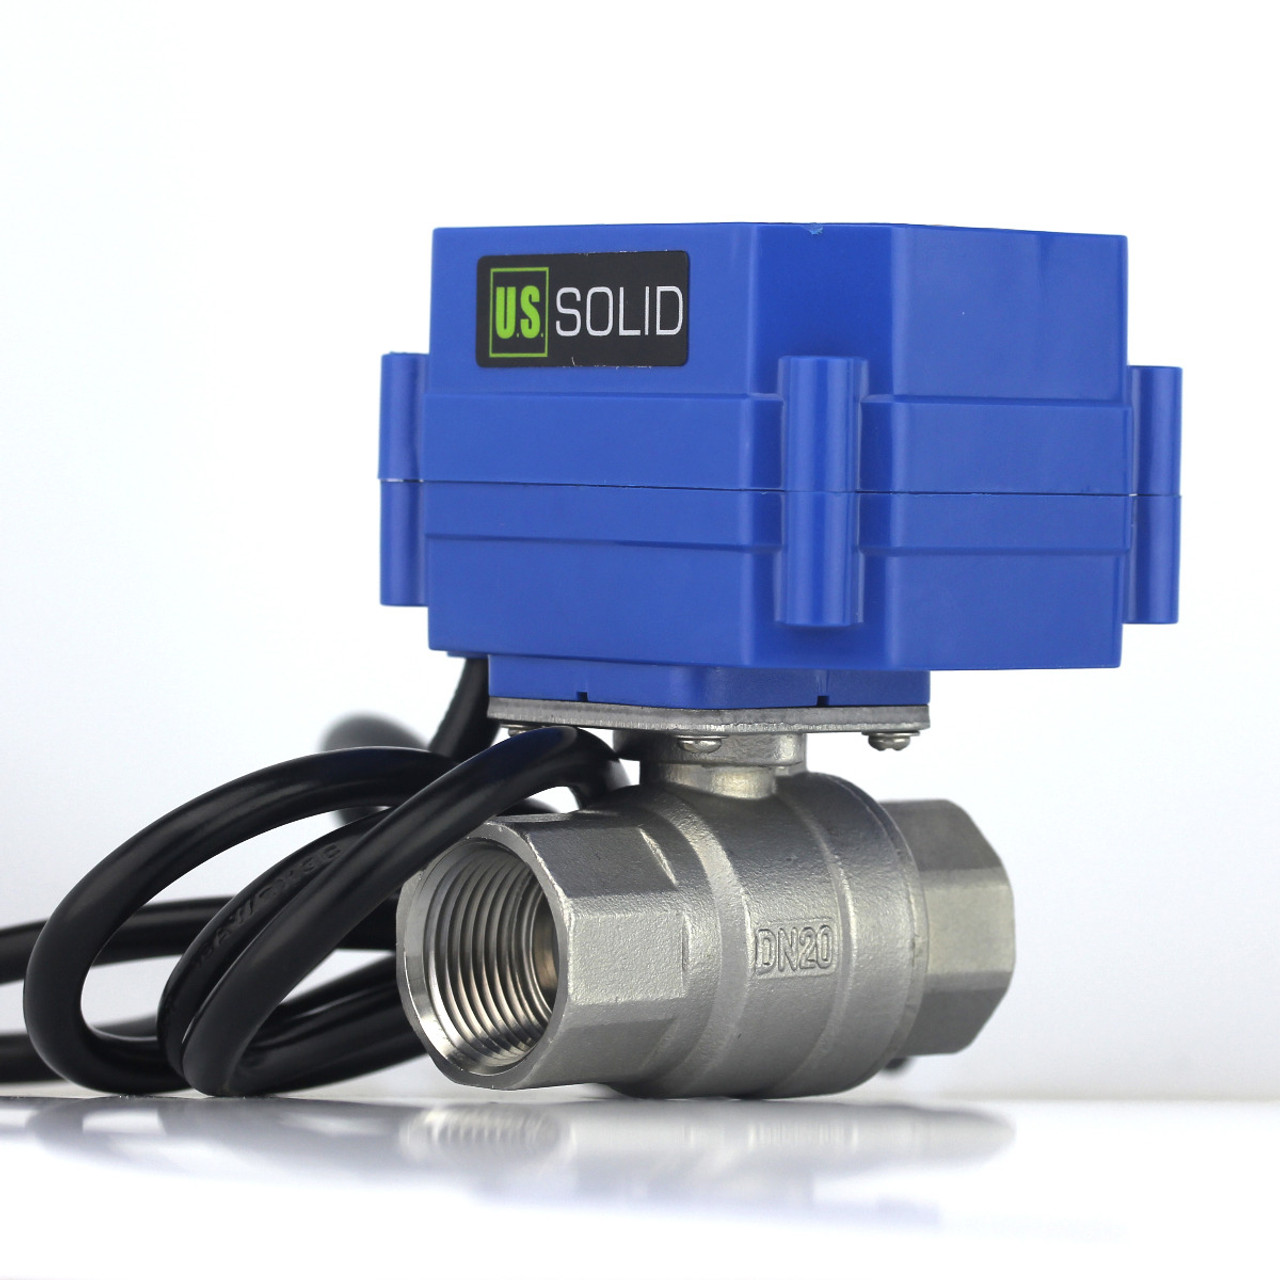 """U.S. Solid Motorized Ball Valve- 3/4"""" Stainless Steel Electrical Ball Valve with Full Port, 110 V AC, 2 Wire Auto Return"""